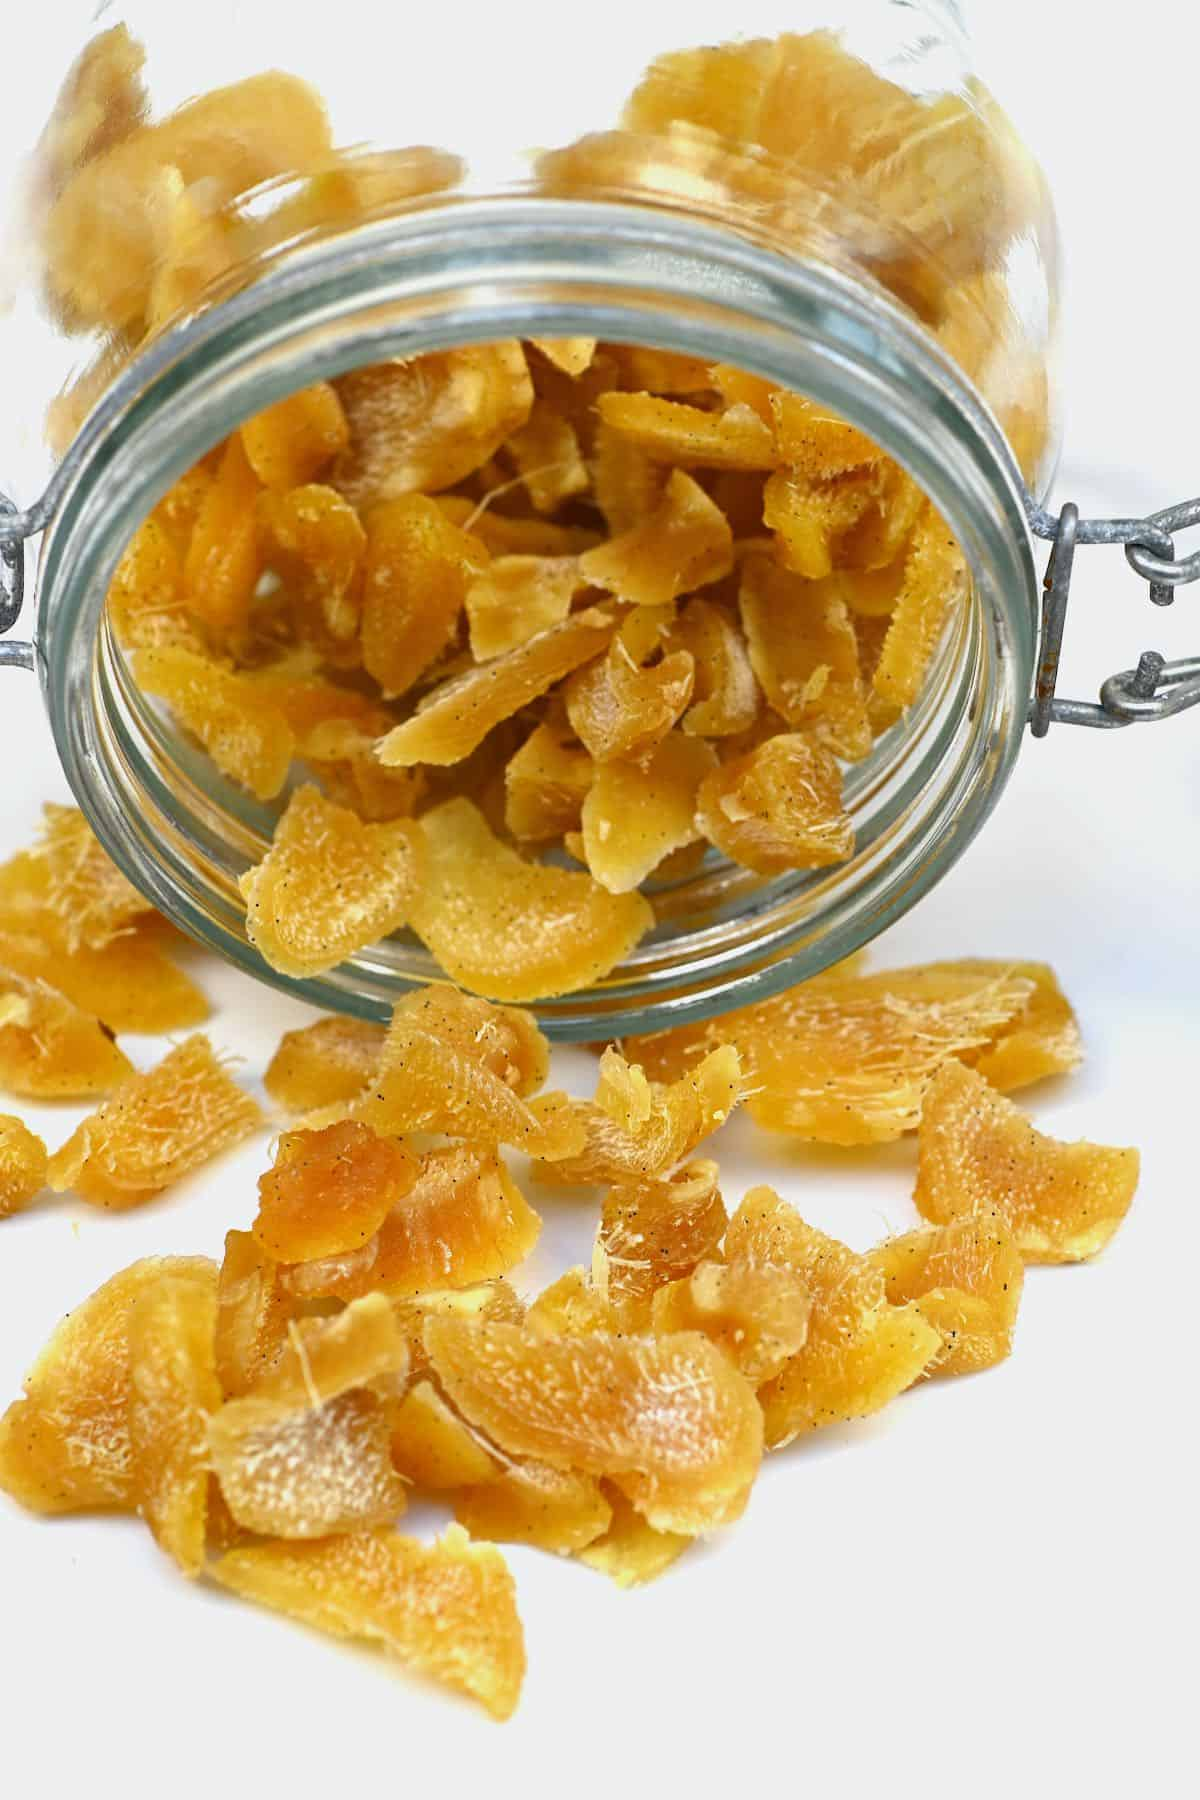 Crystallized ginger coming out of a jar